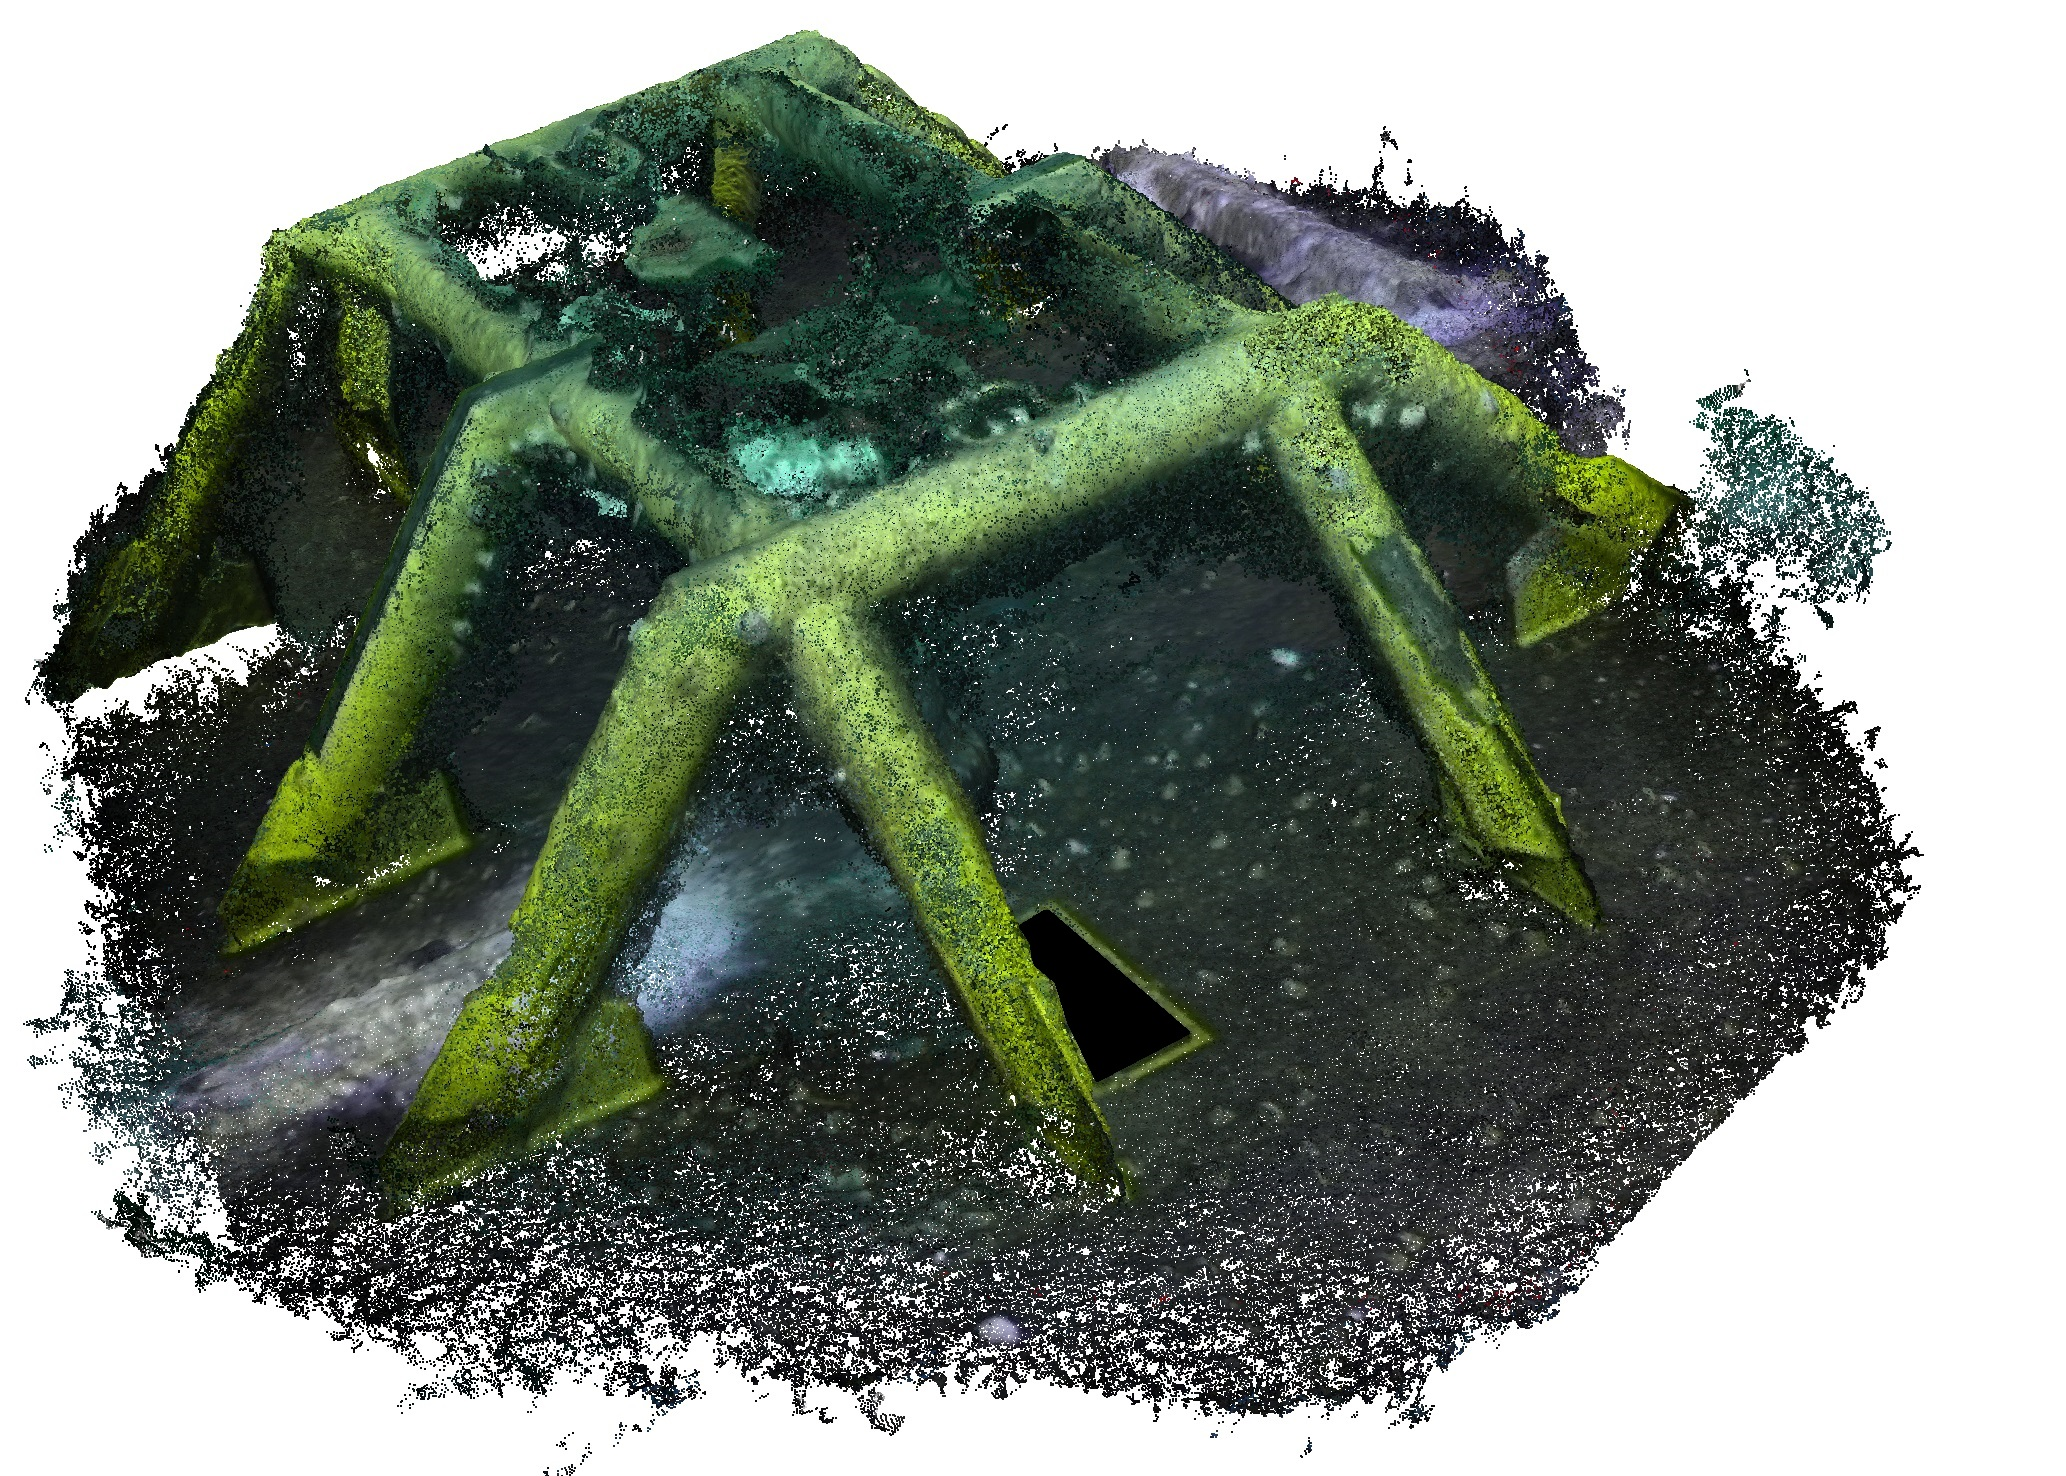 Full colour 3D structure reconstruction from legacy video footage